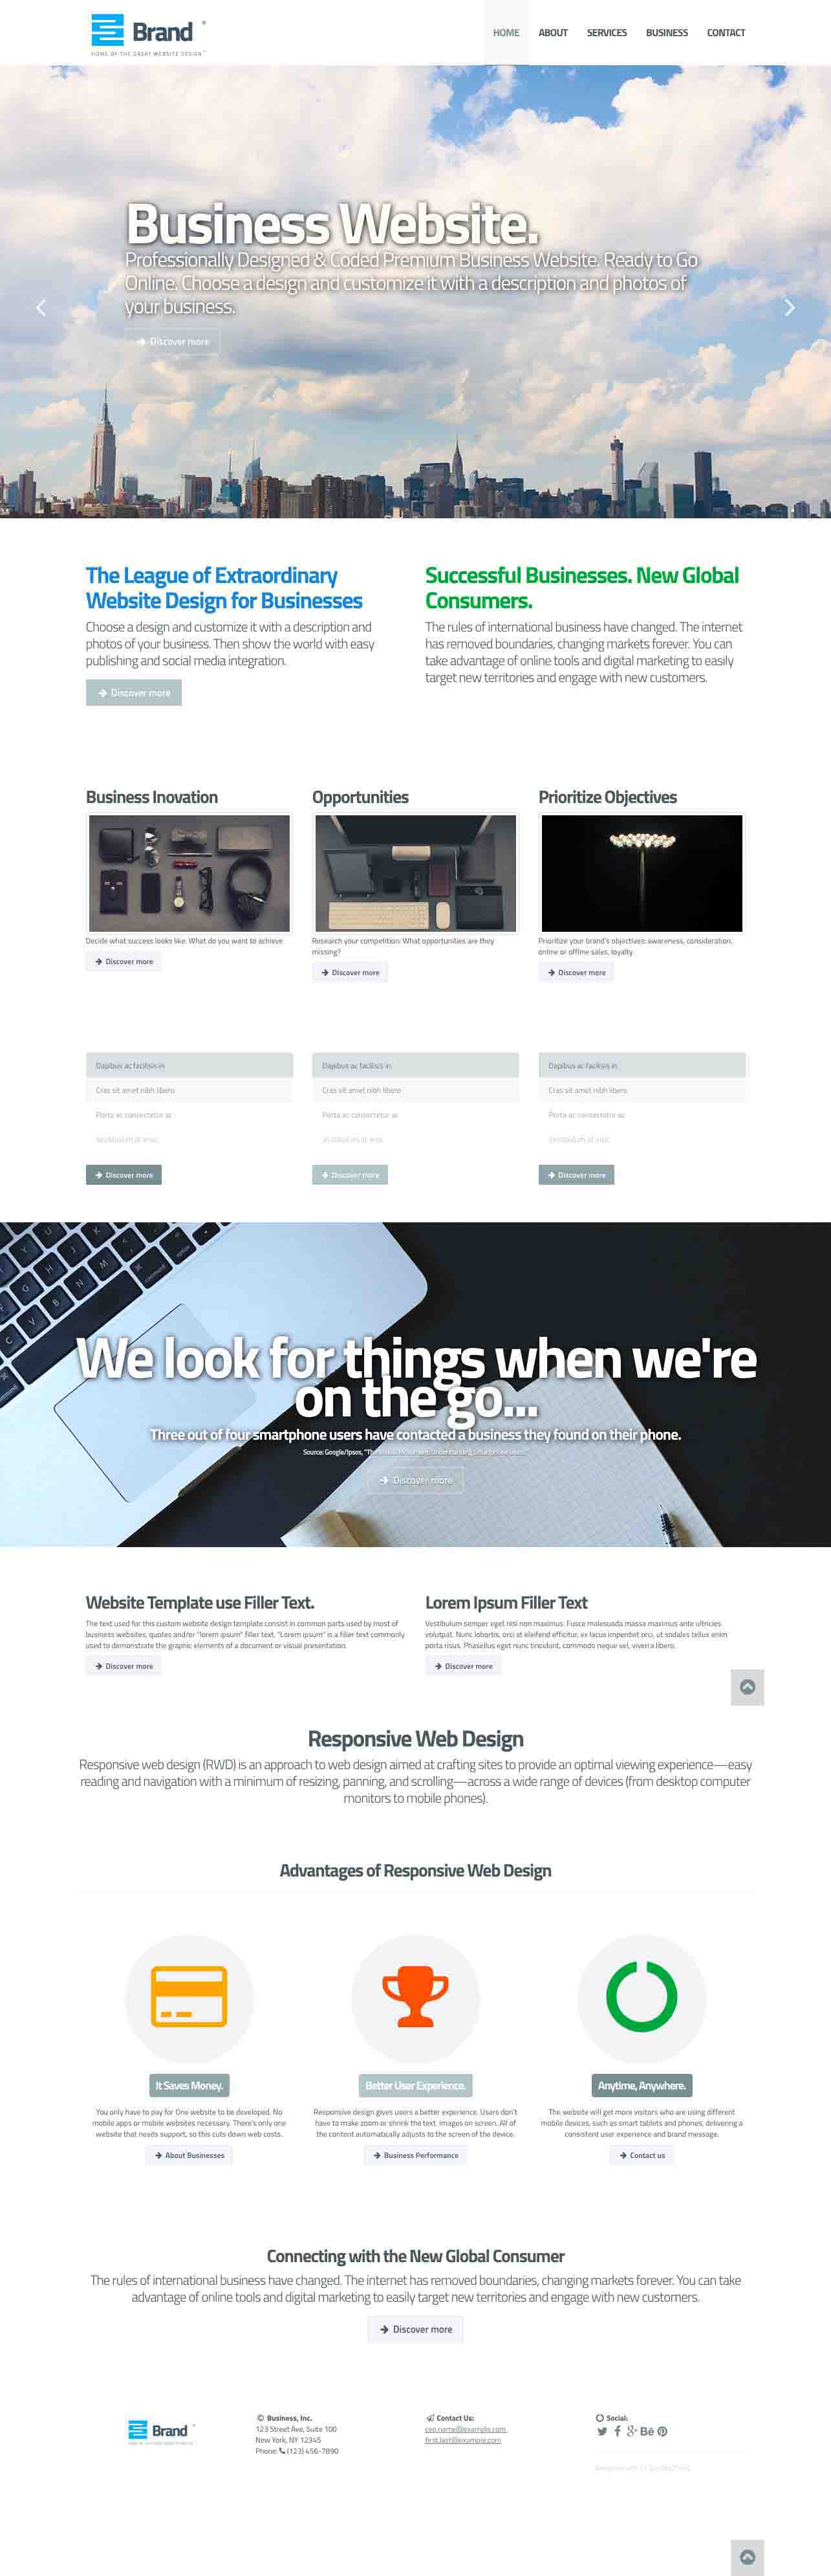 Responsive Web Design Adverion